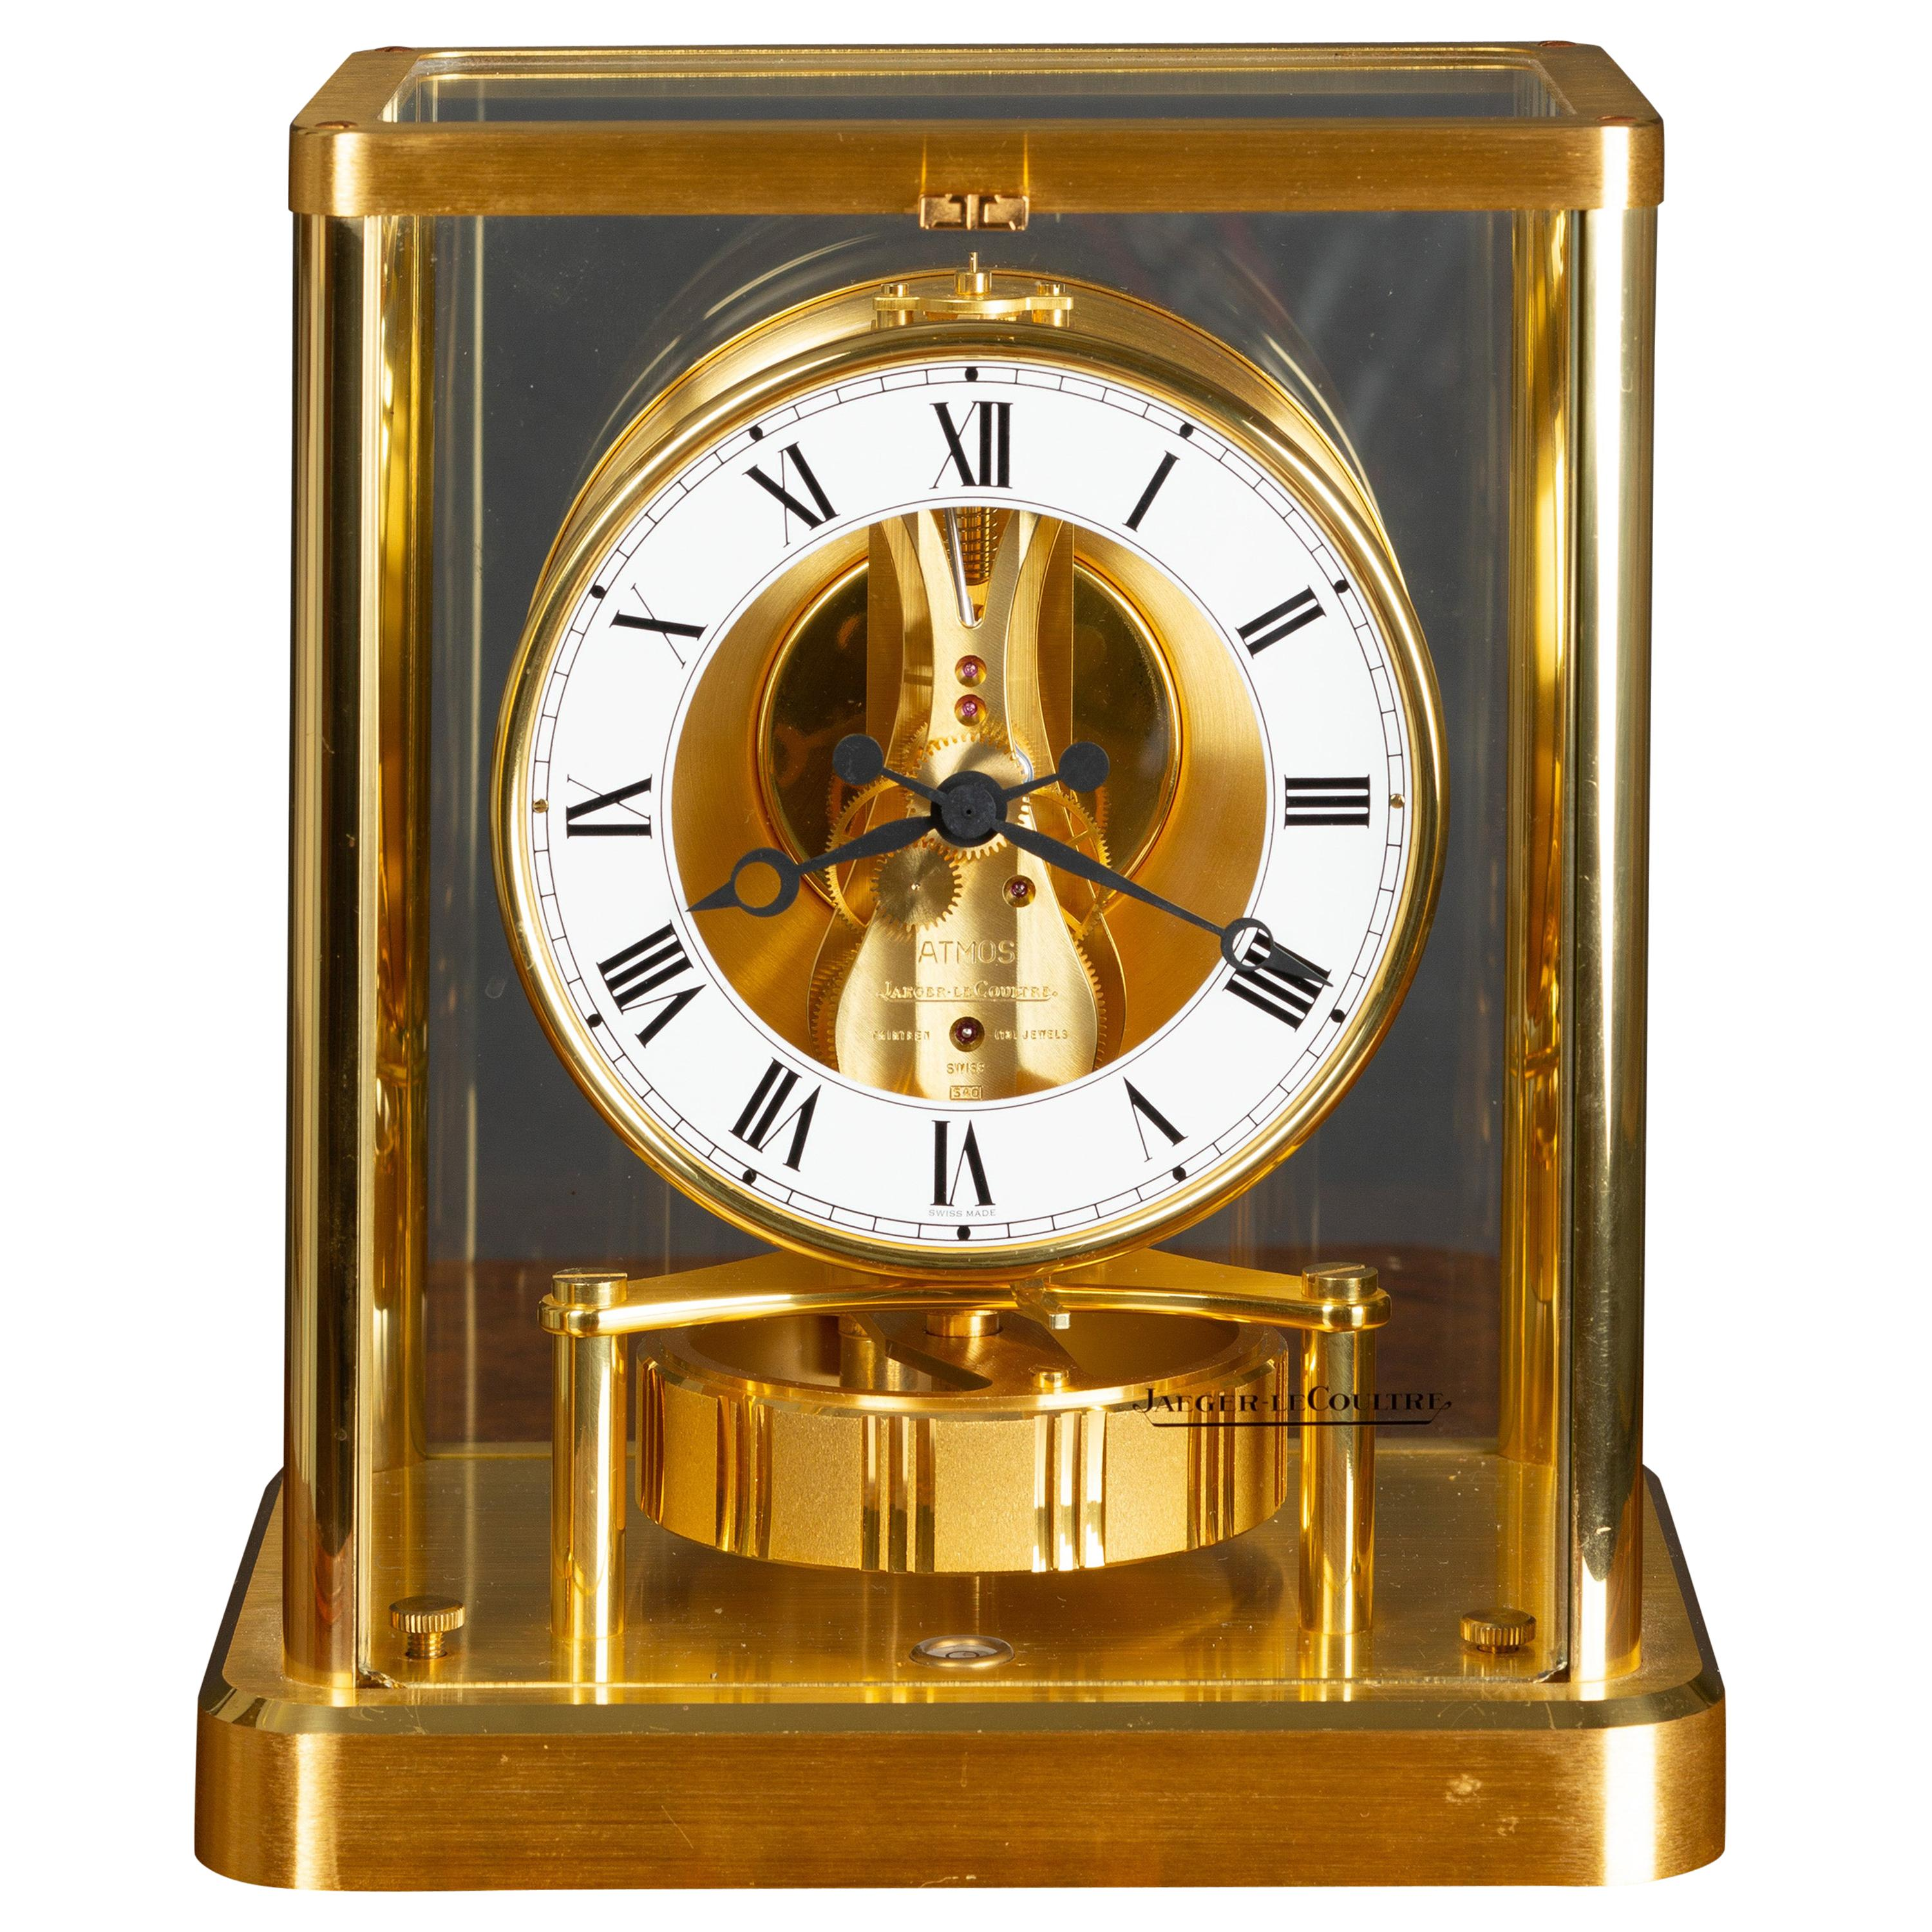 Jaeger LeCoultre Gold-Plated Atmos Clock